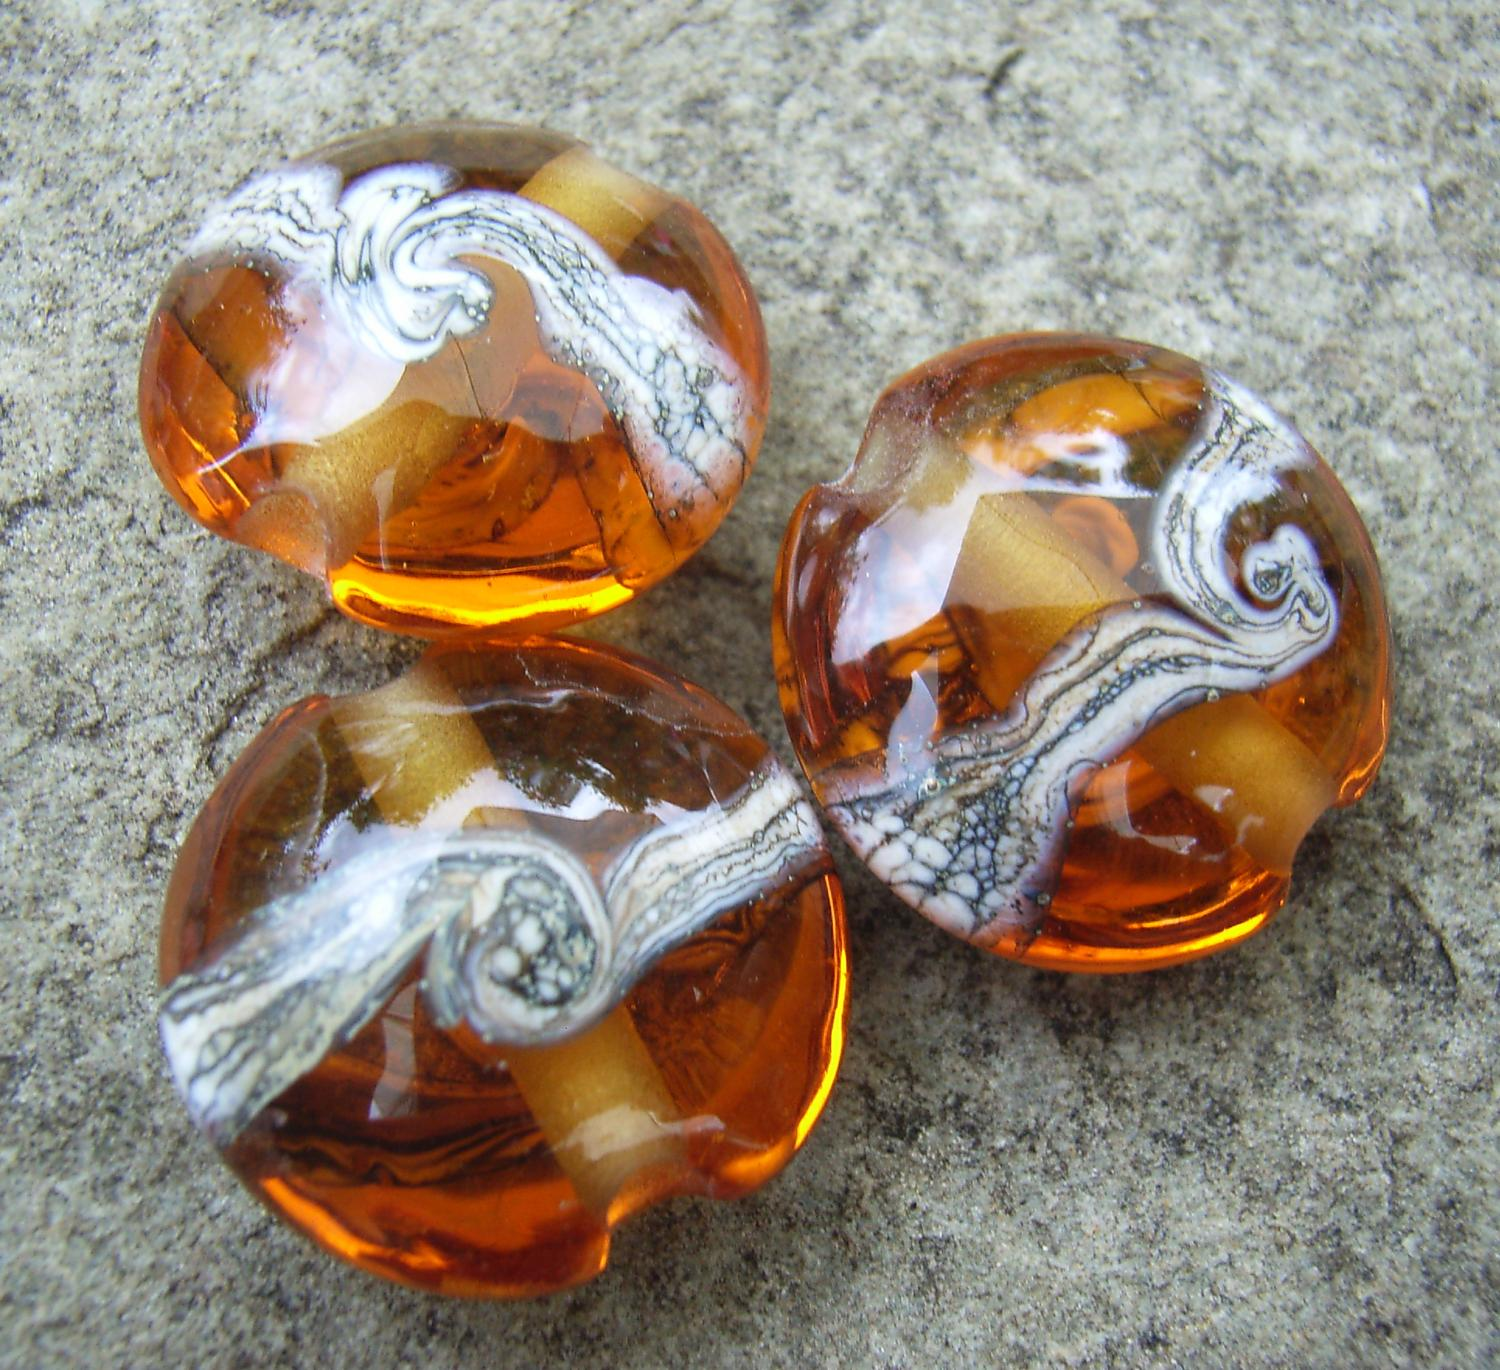 Silvered Ivory Swirl 18mm Medium Amber Lentil Handmade Artisan Glass Lampwork Beads - By the Bead, (Made to Order) b